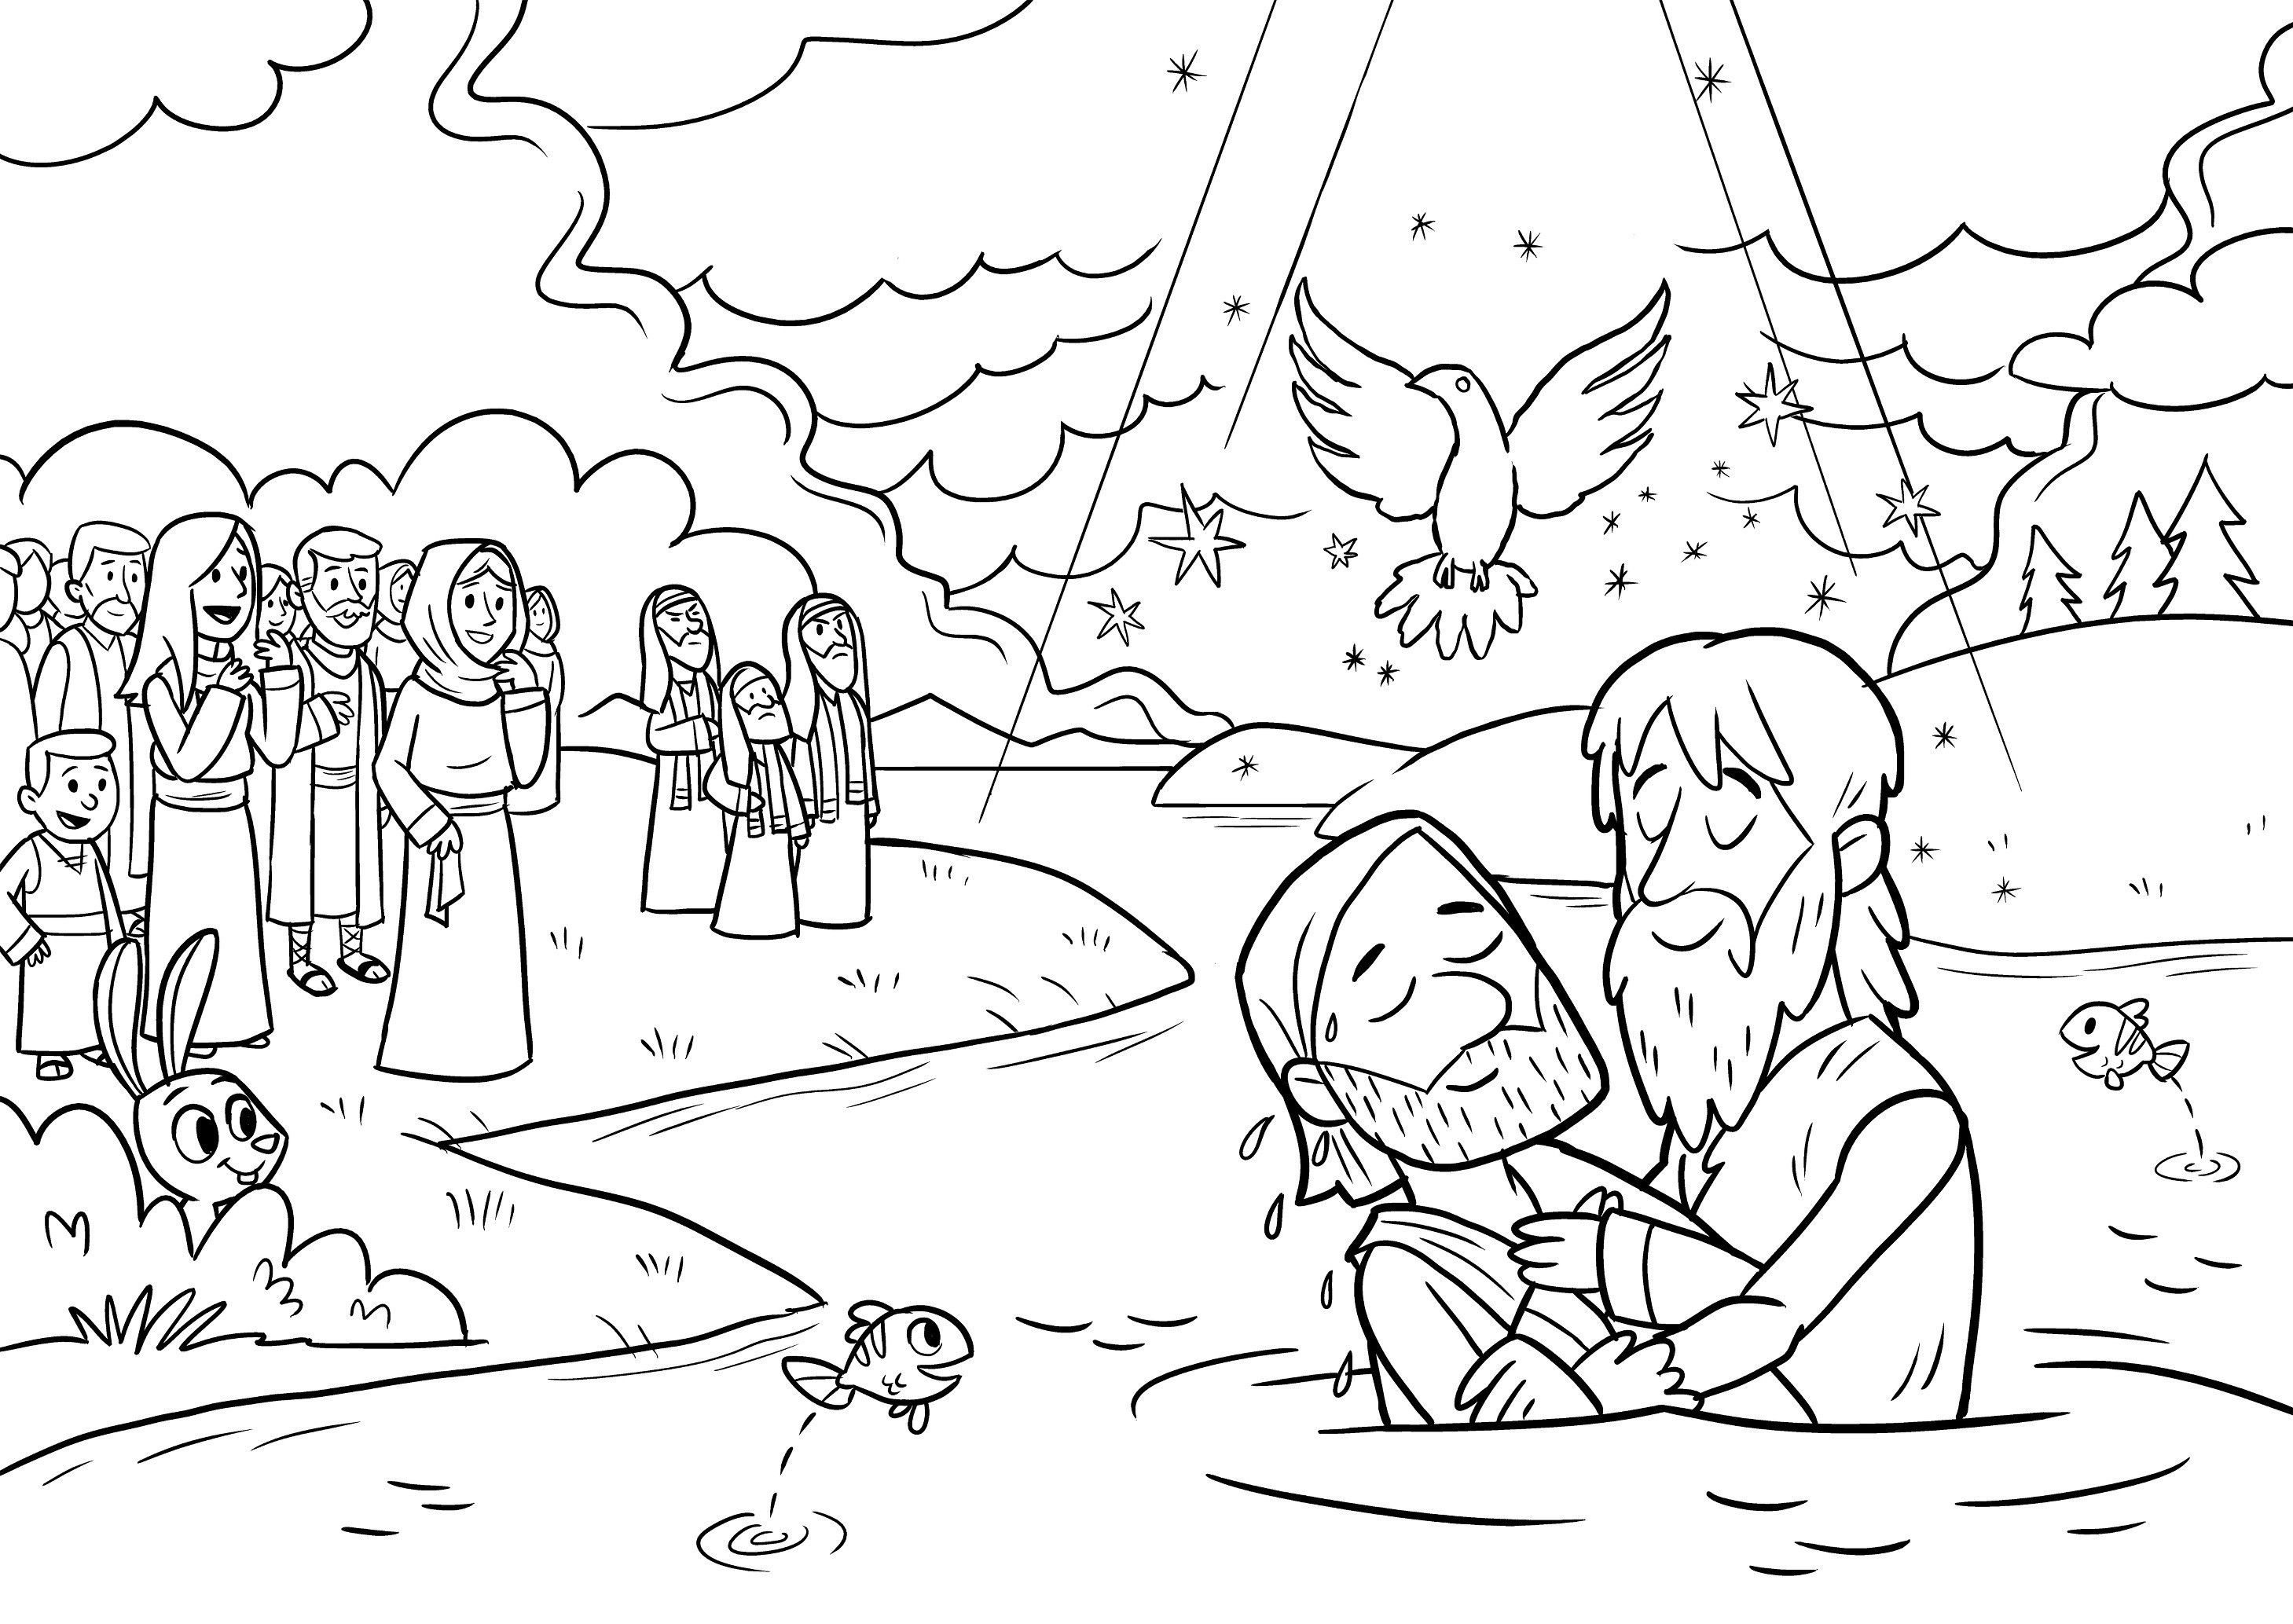 baptism of jesus coloring page john the baptism in life of jesus coloring pages best coloring baptism jesus page of